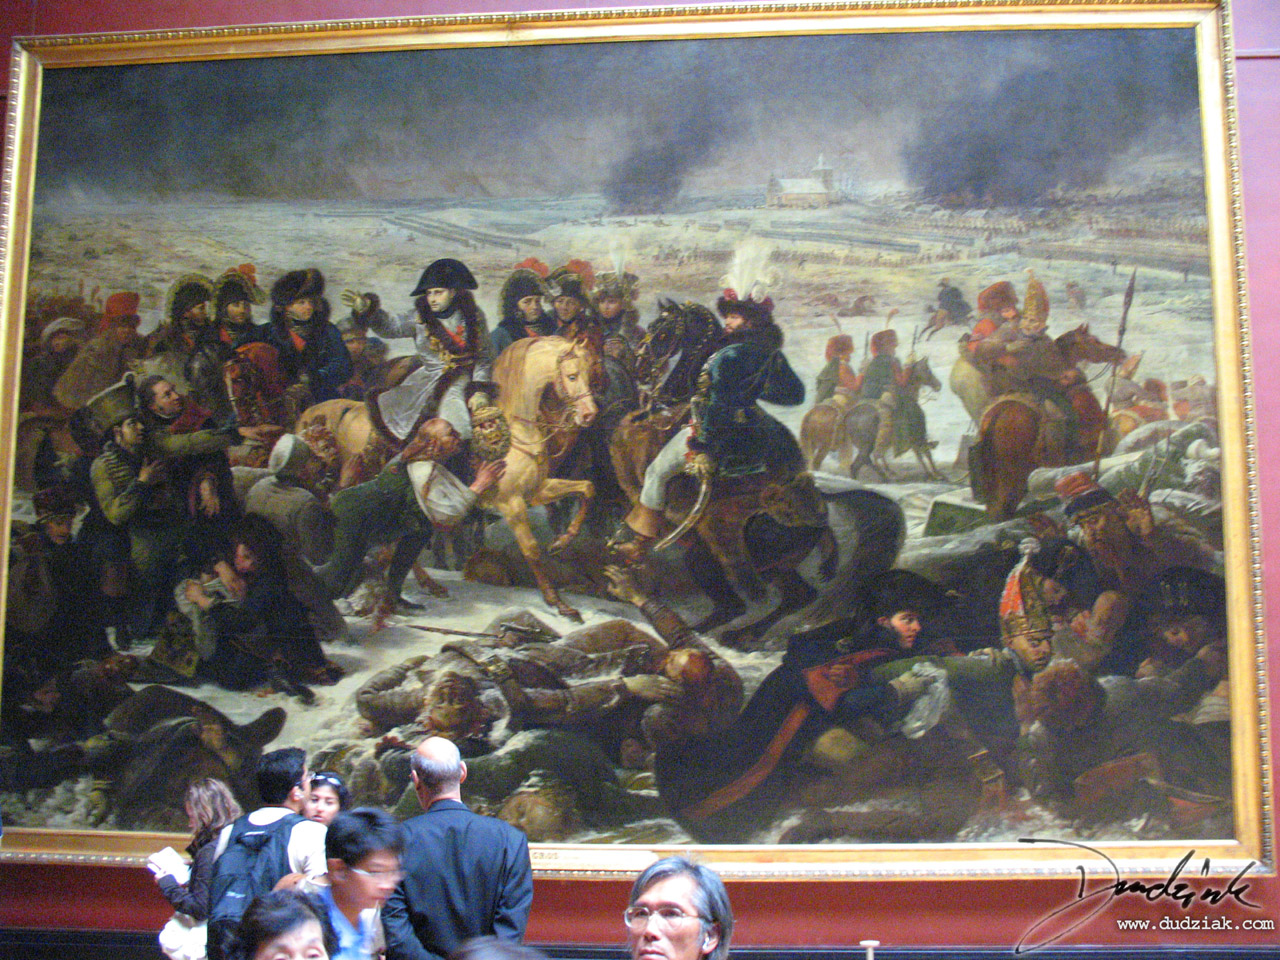 painting,  Louvre Museum,  Musee du Louvre,  Paris,  battle of eylau,  France,  napoleon